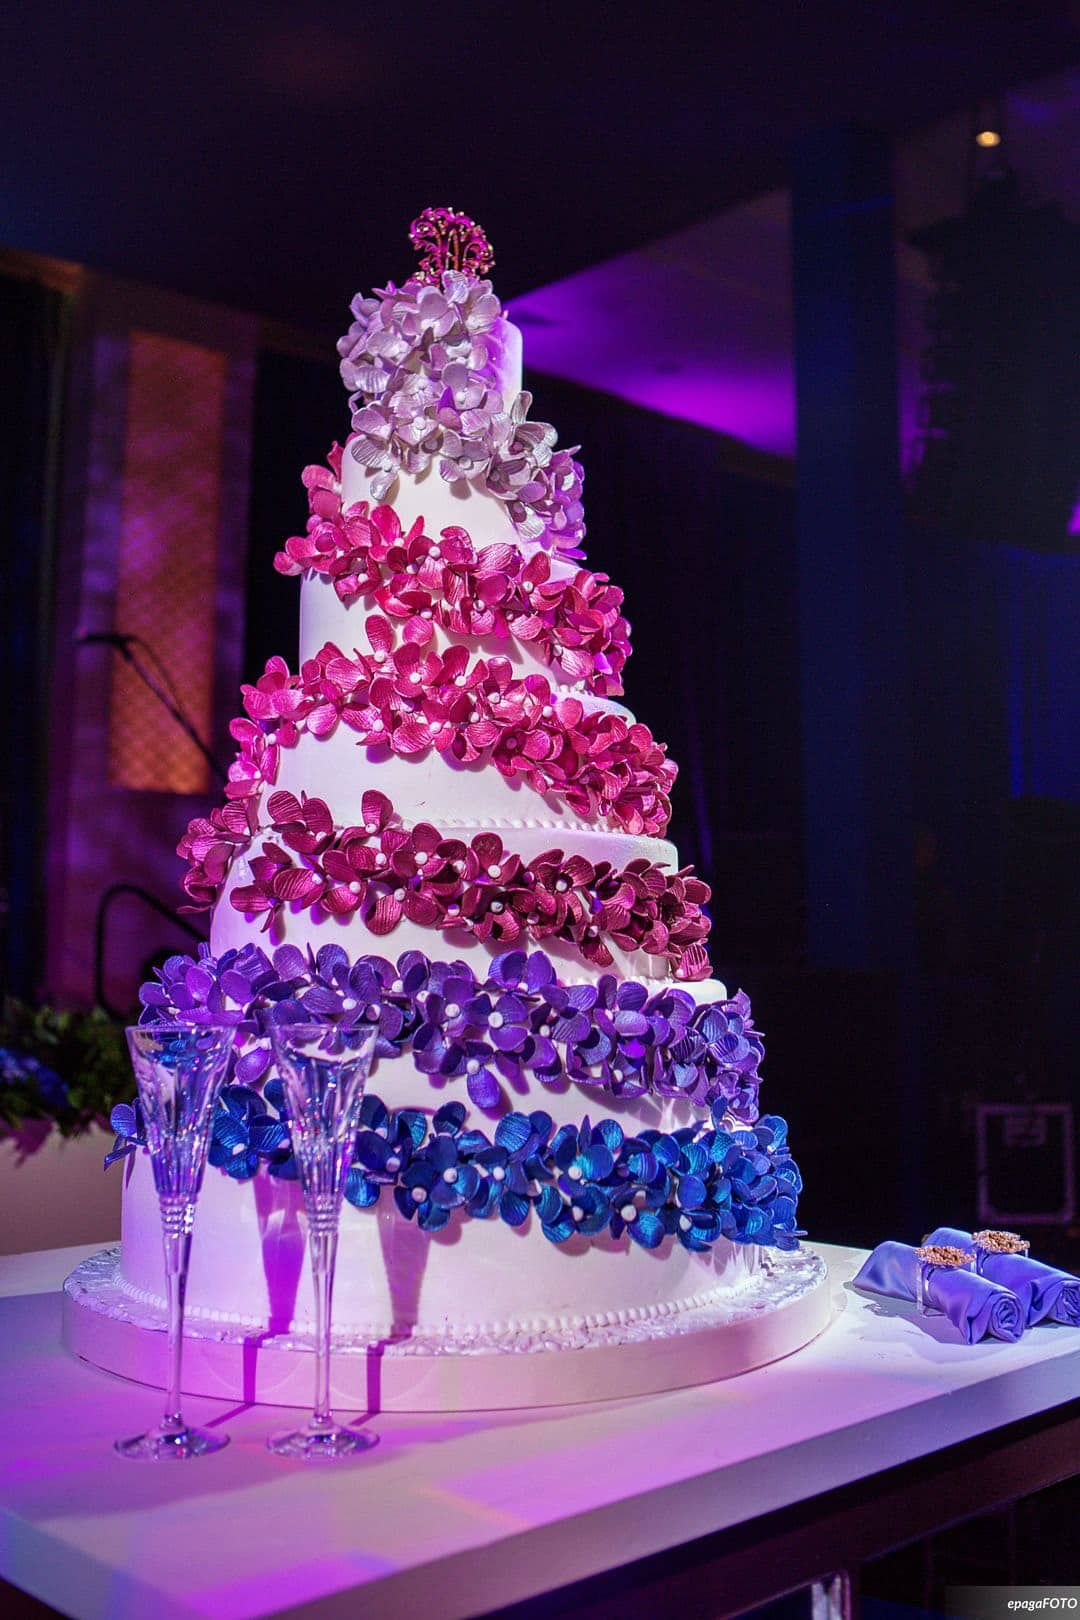 colorful wedding cake with flowers